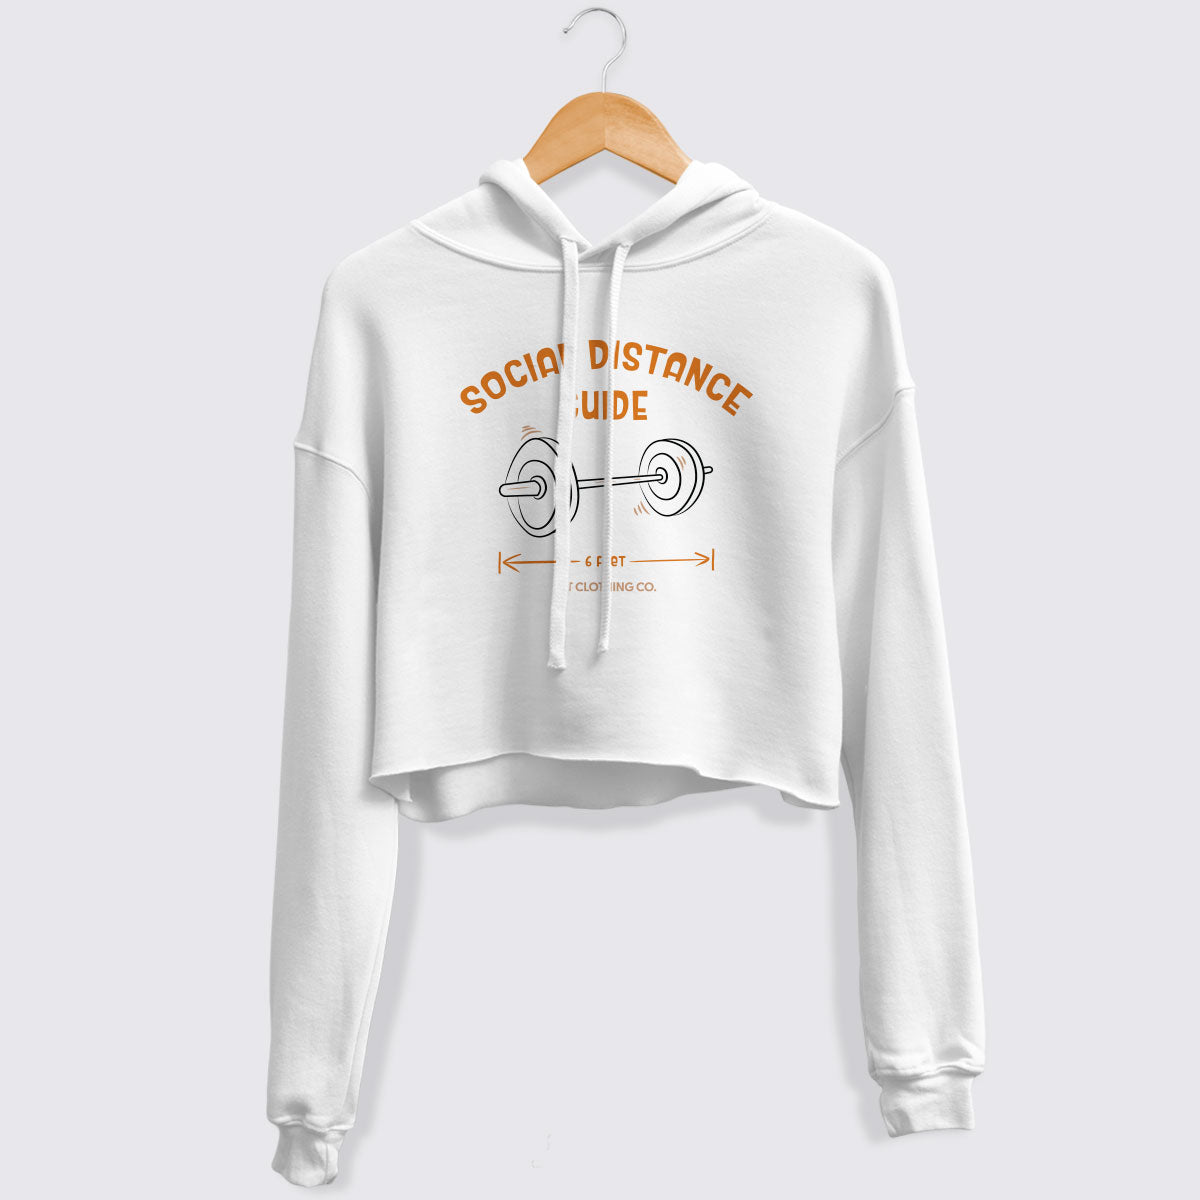 Social Distance Guide Cropped Fleece Hoodie